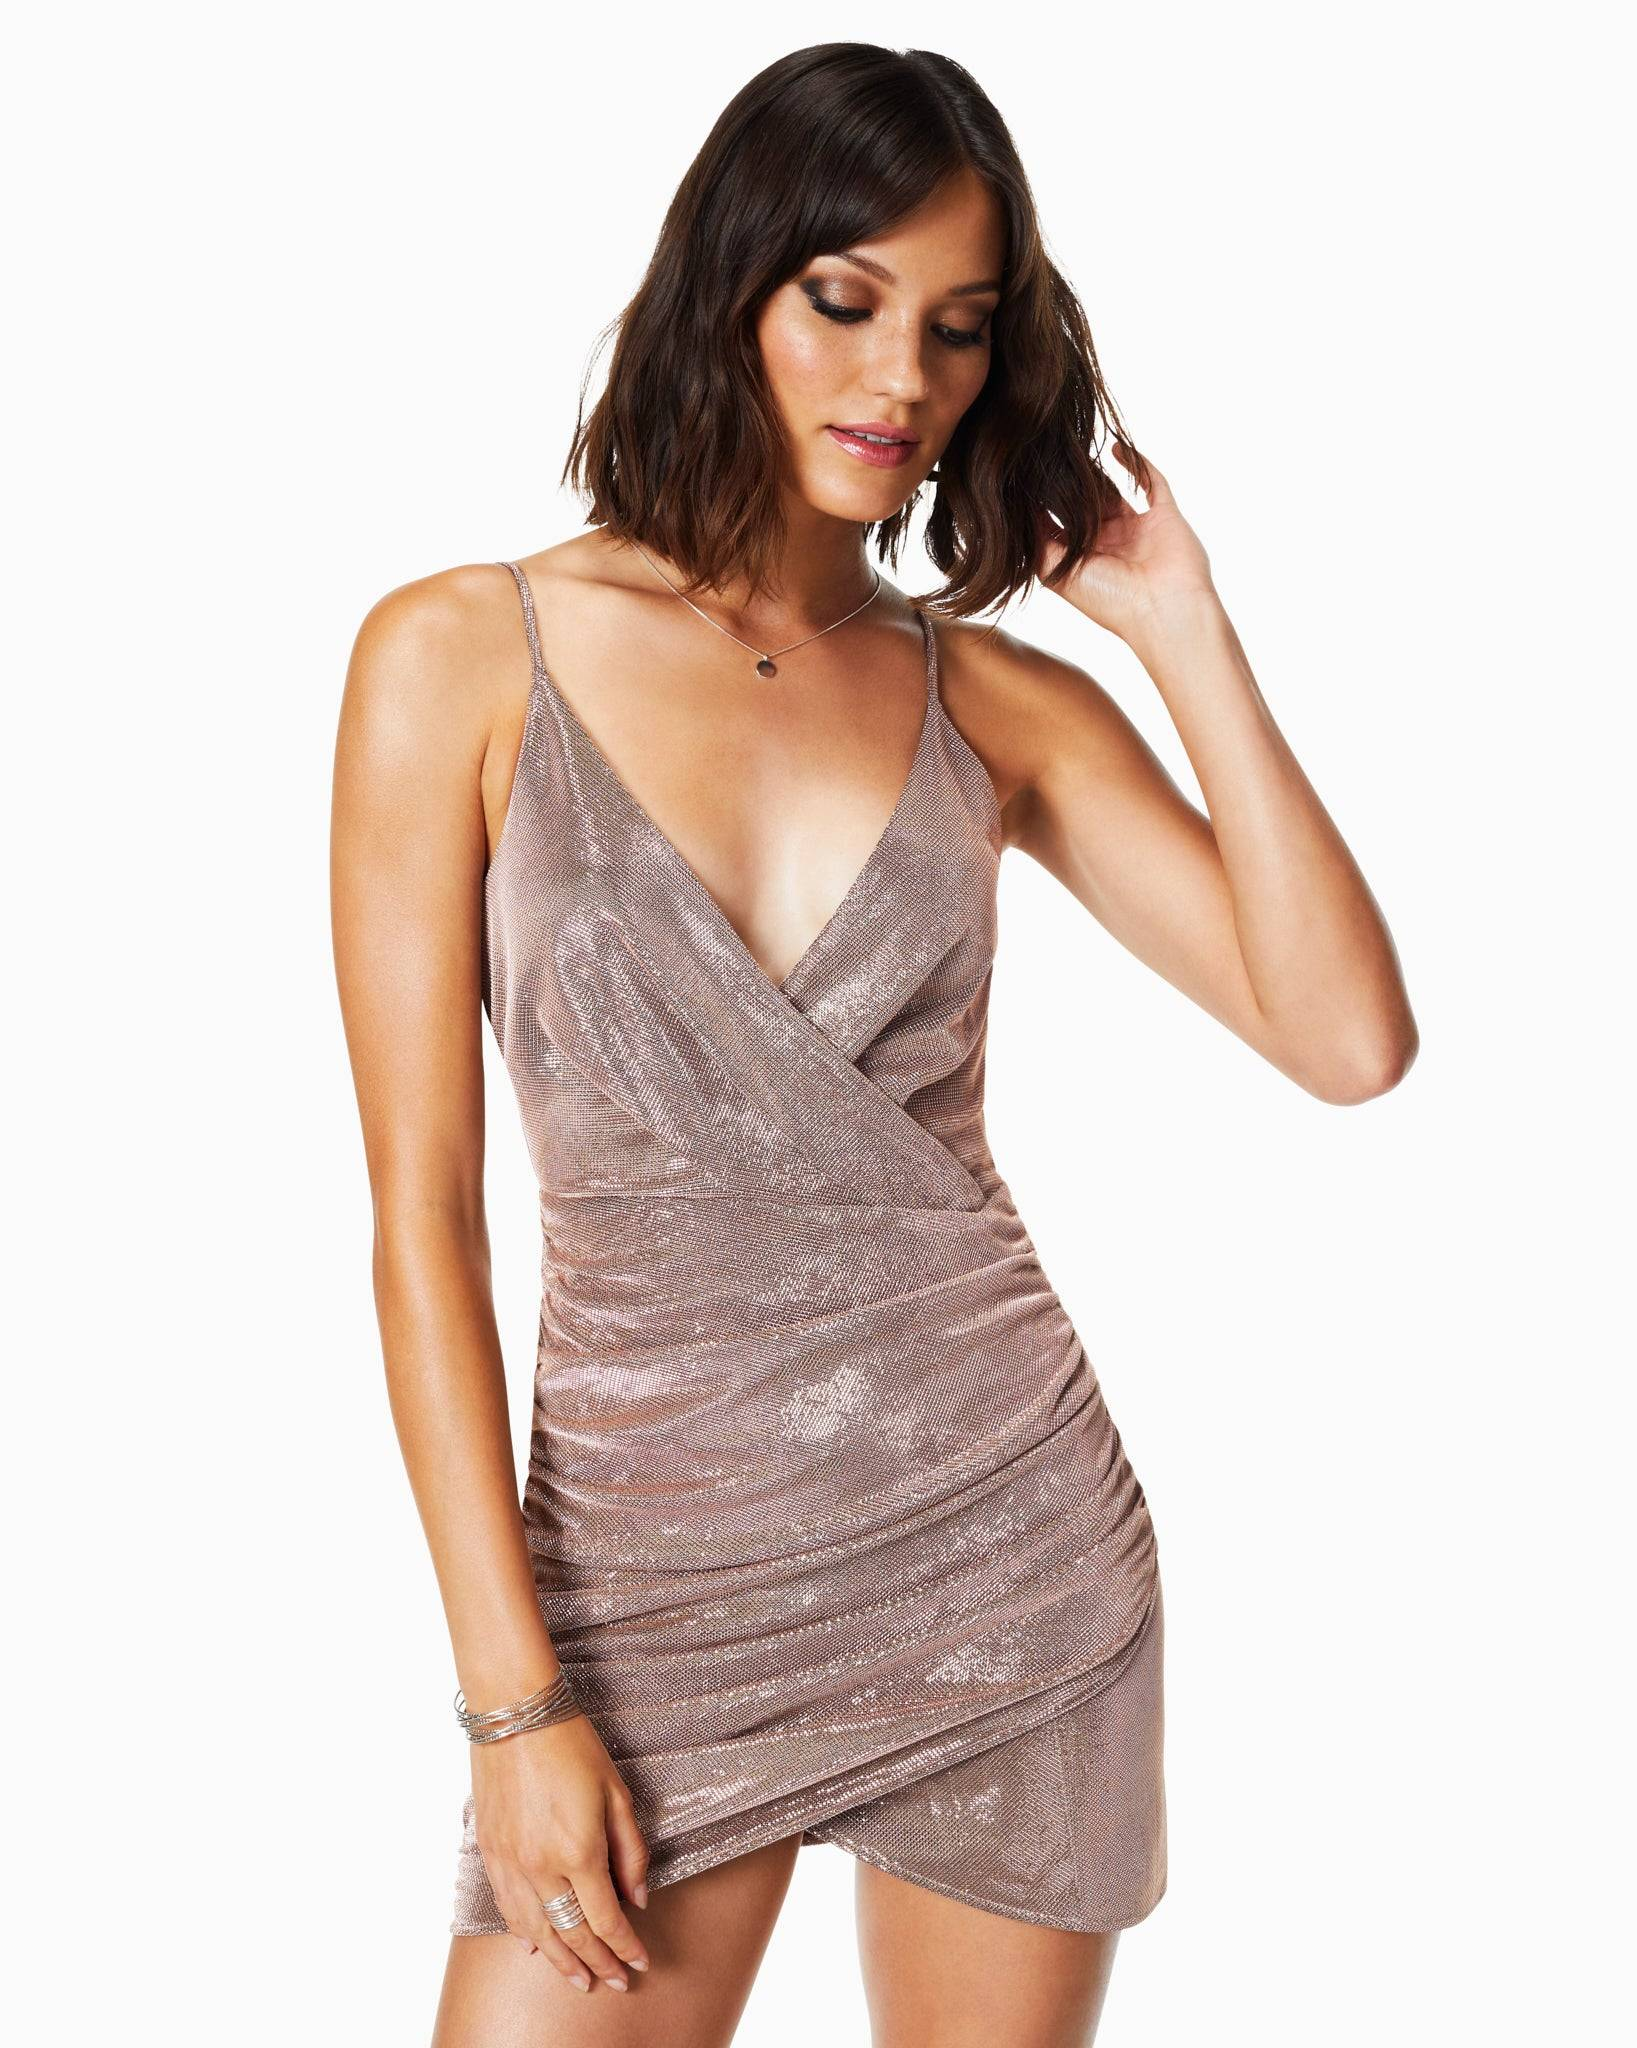 Madilyn Ruched Mini Dress in Holiday Blush - Holiday Blush - Size: 6